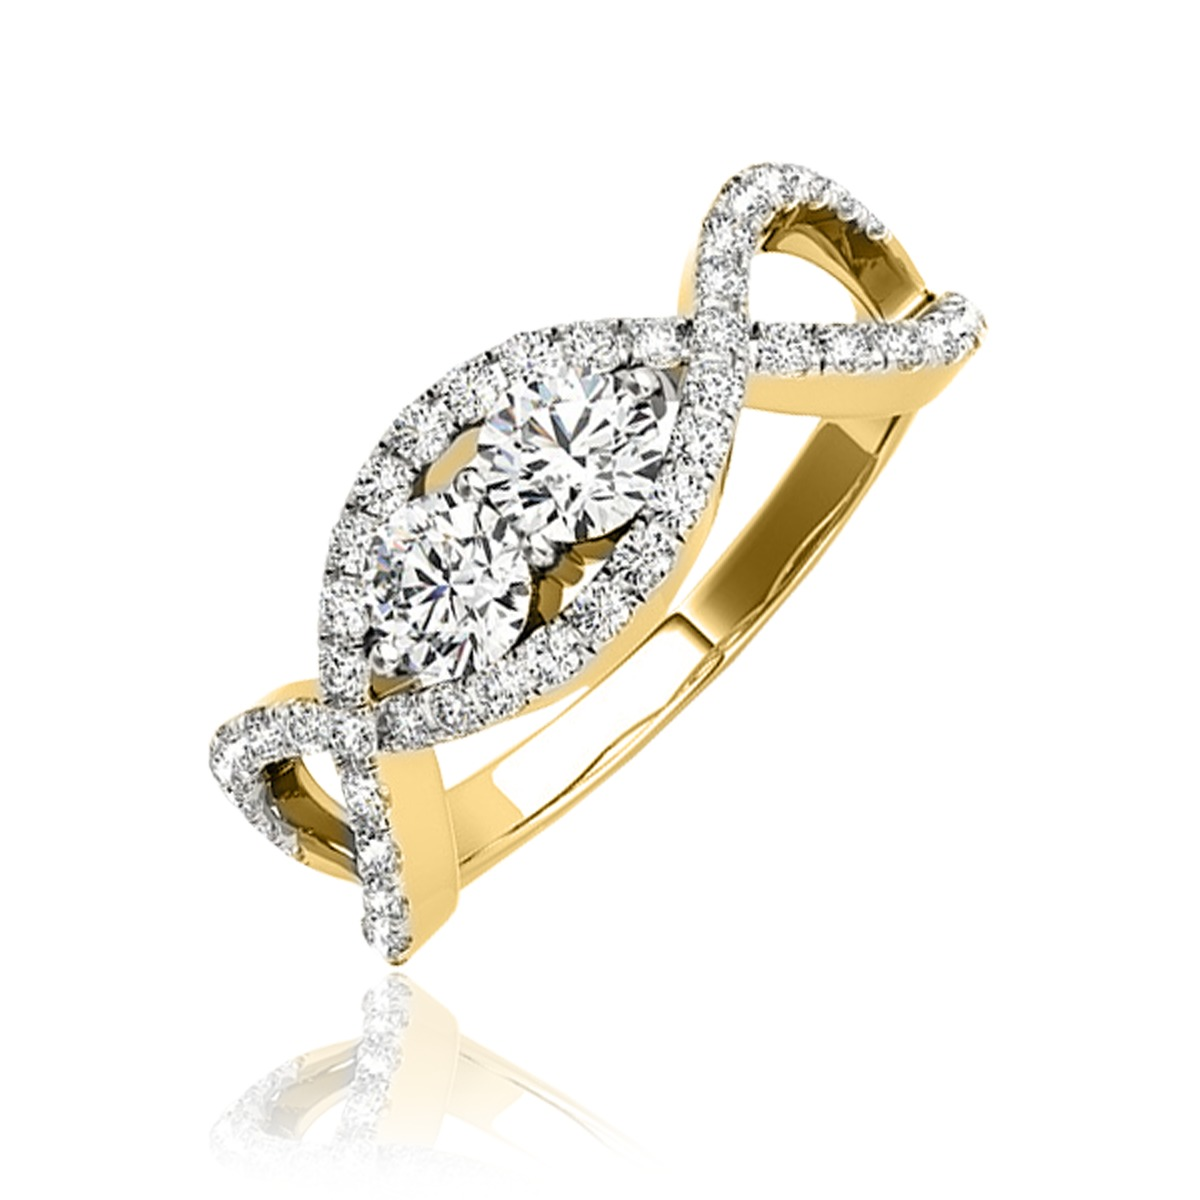 1 Carat T.W. Round Cut Diamond Two Stone Ring 14K Yellow Gold